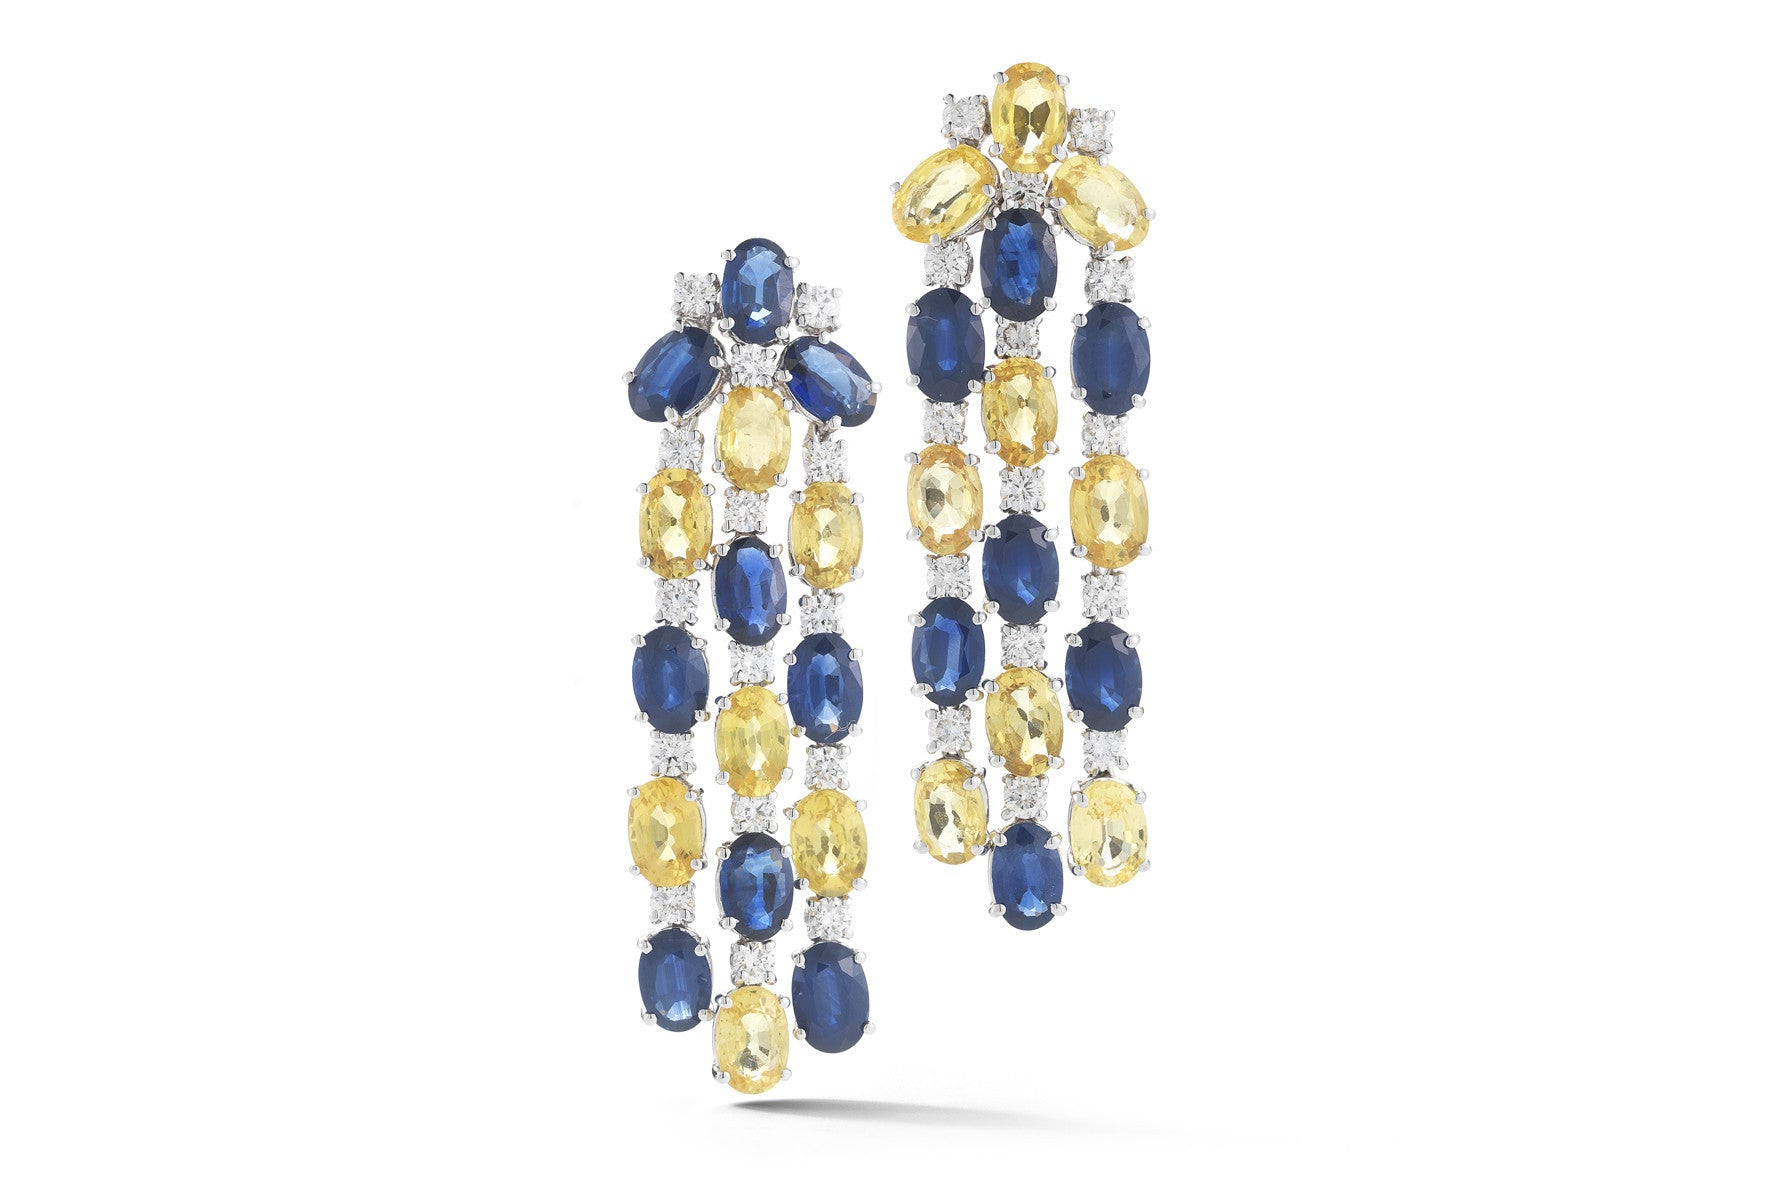 Nightlife chandelier earrings with blue yellow sapphires and nightlife chandelier earrings with blue yellow sapphires and diamonds 18k white gold arubaitofo Gallery